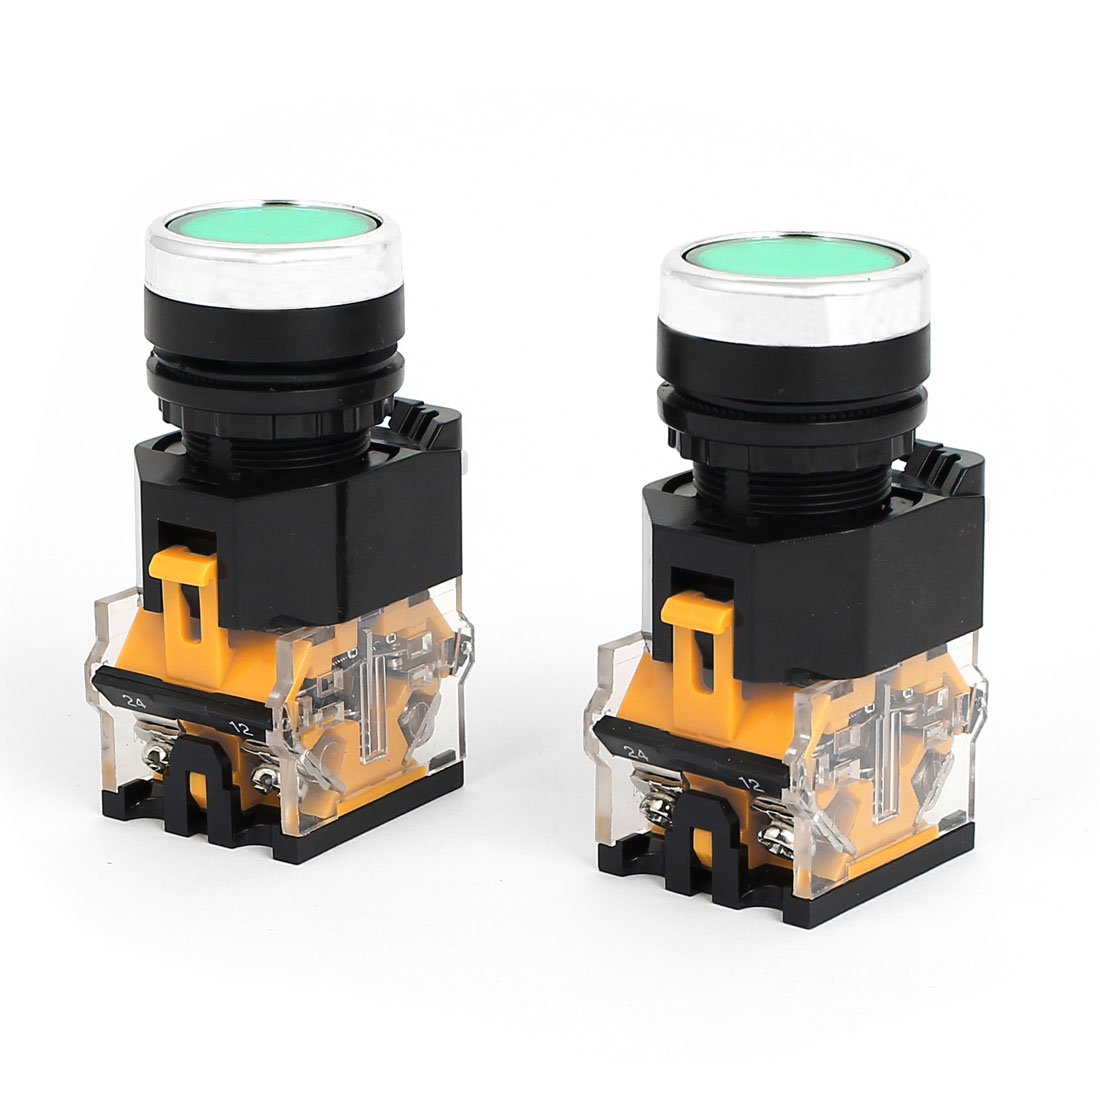 2pcs AC 220V Green Light LED Indicator Panel Mounted Self Locking Push Button Switch 660V 10A